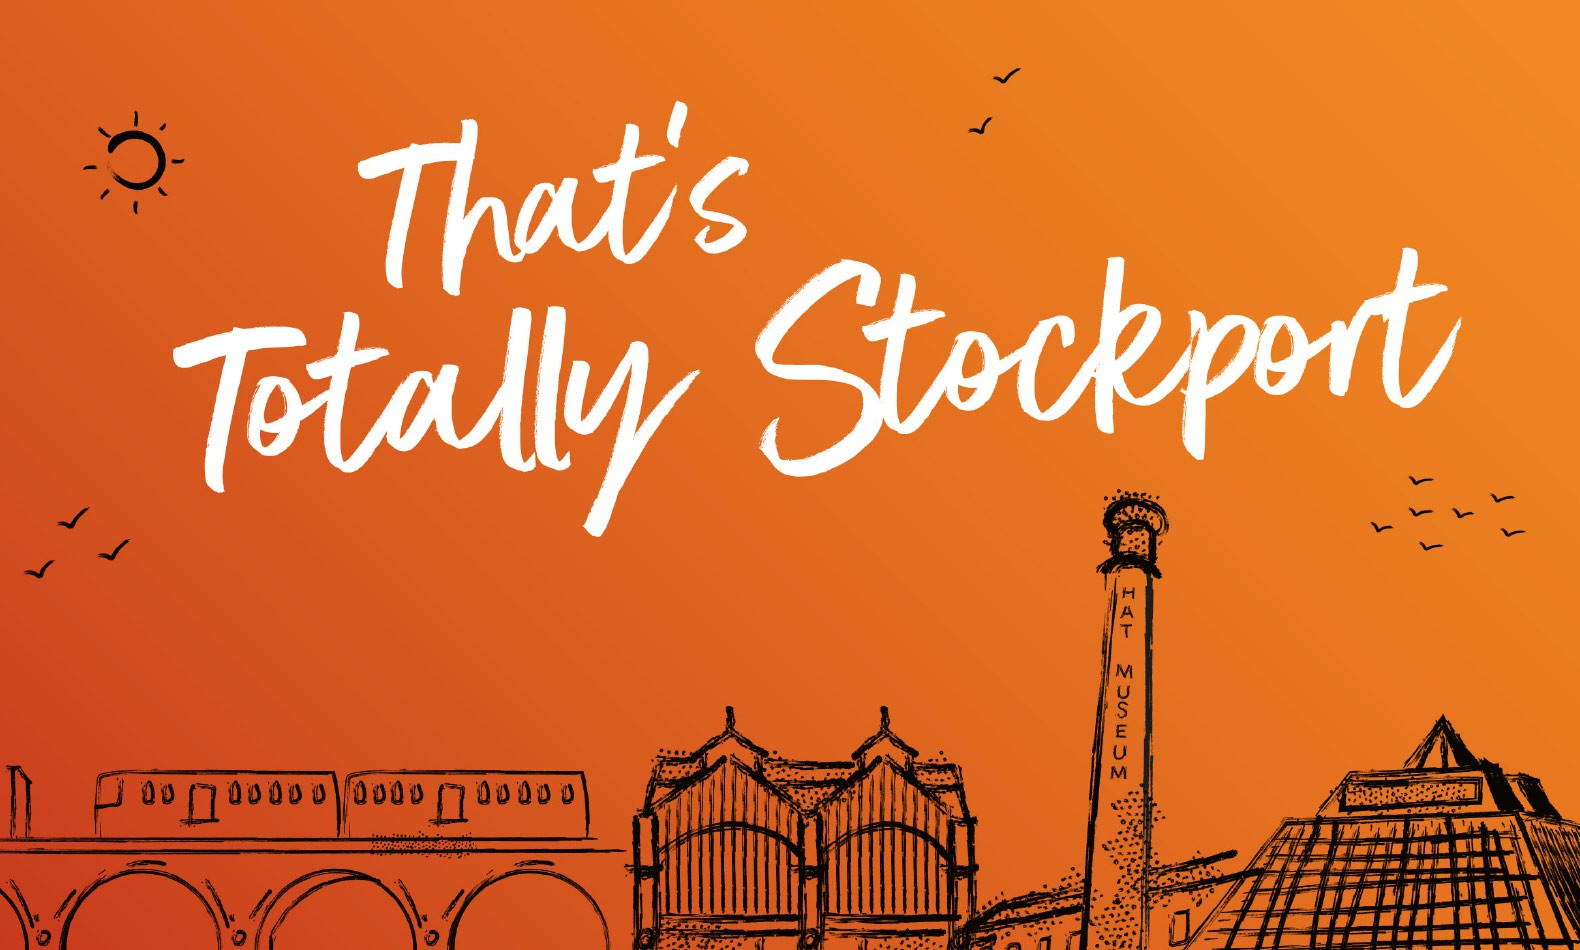 stockport town centre illustration